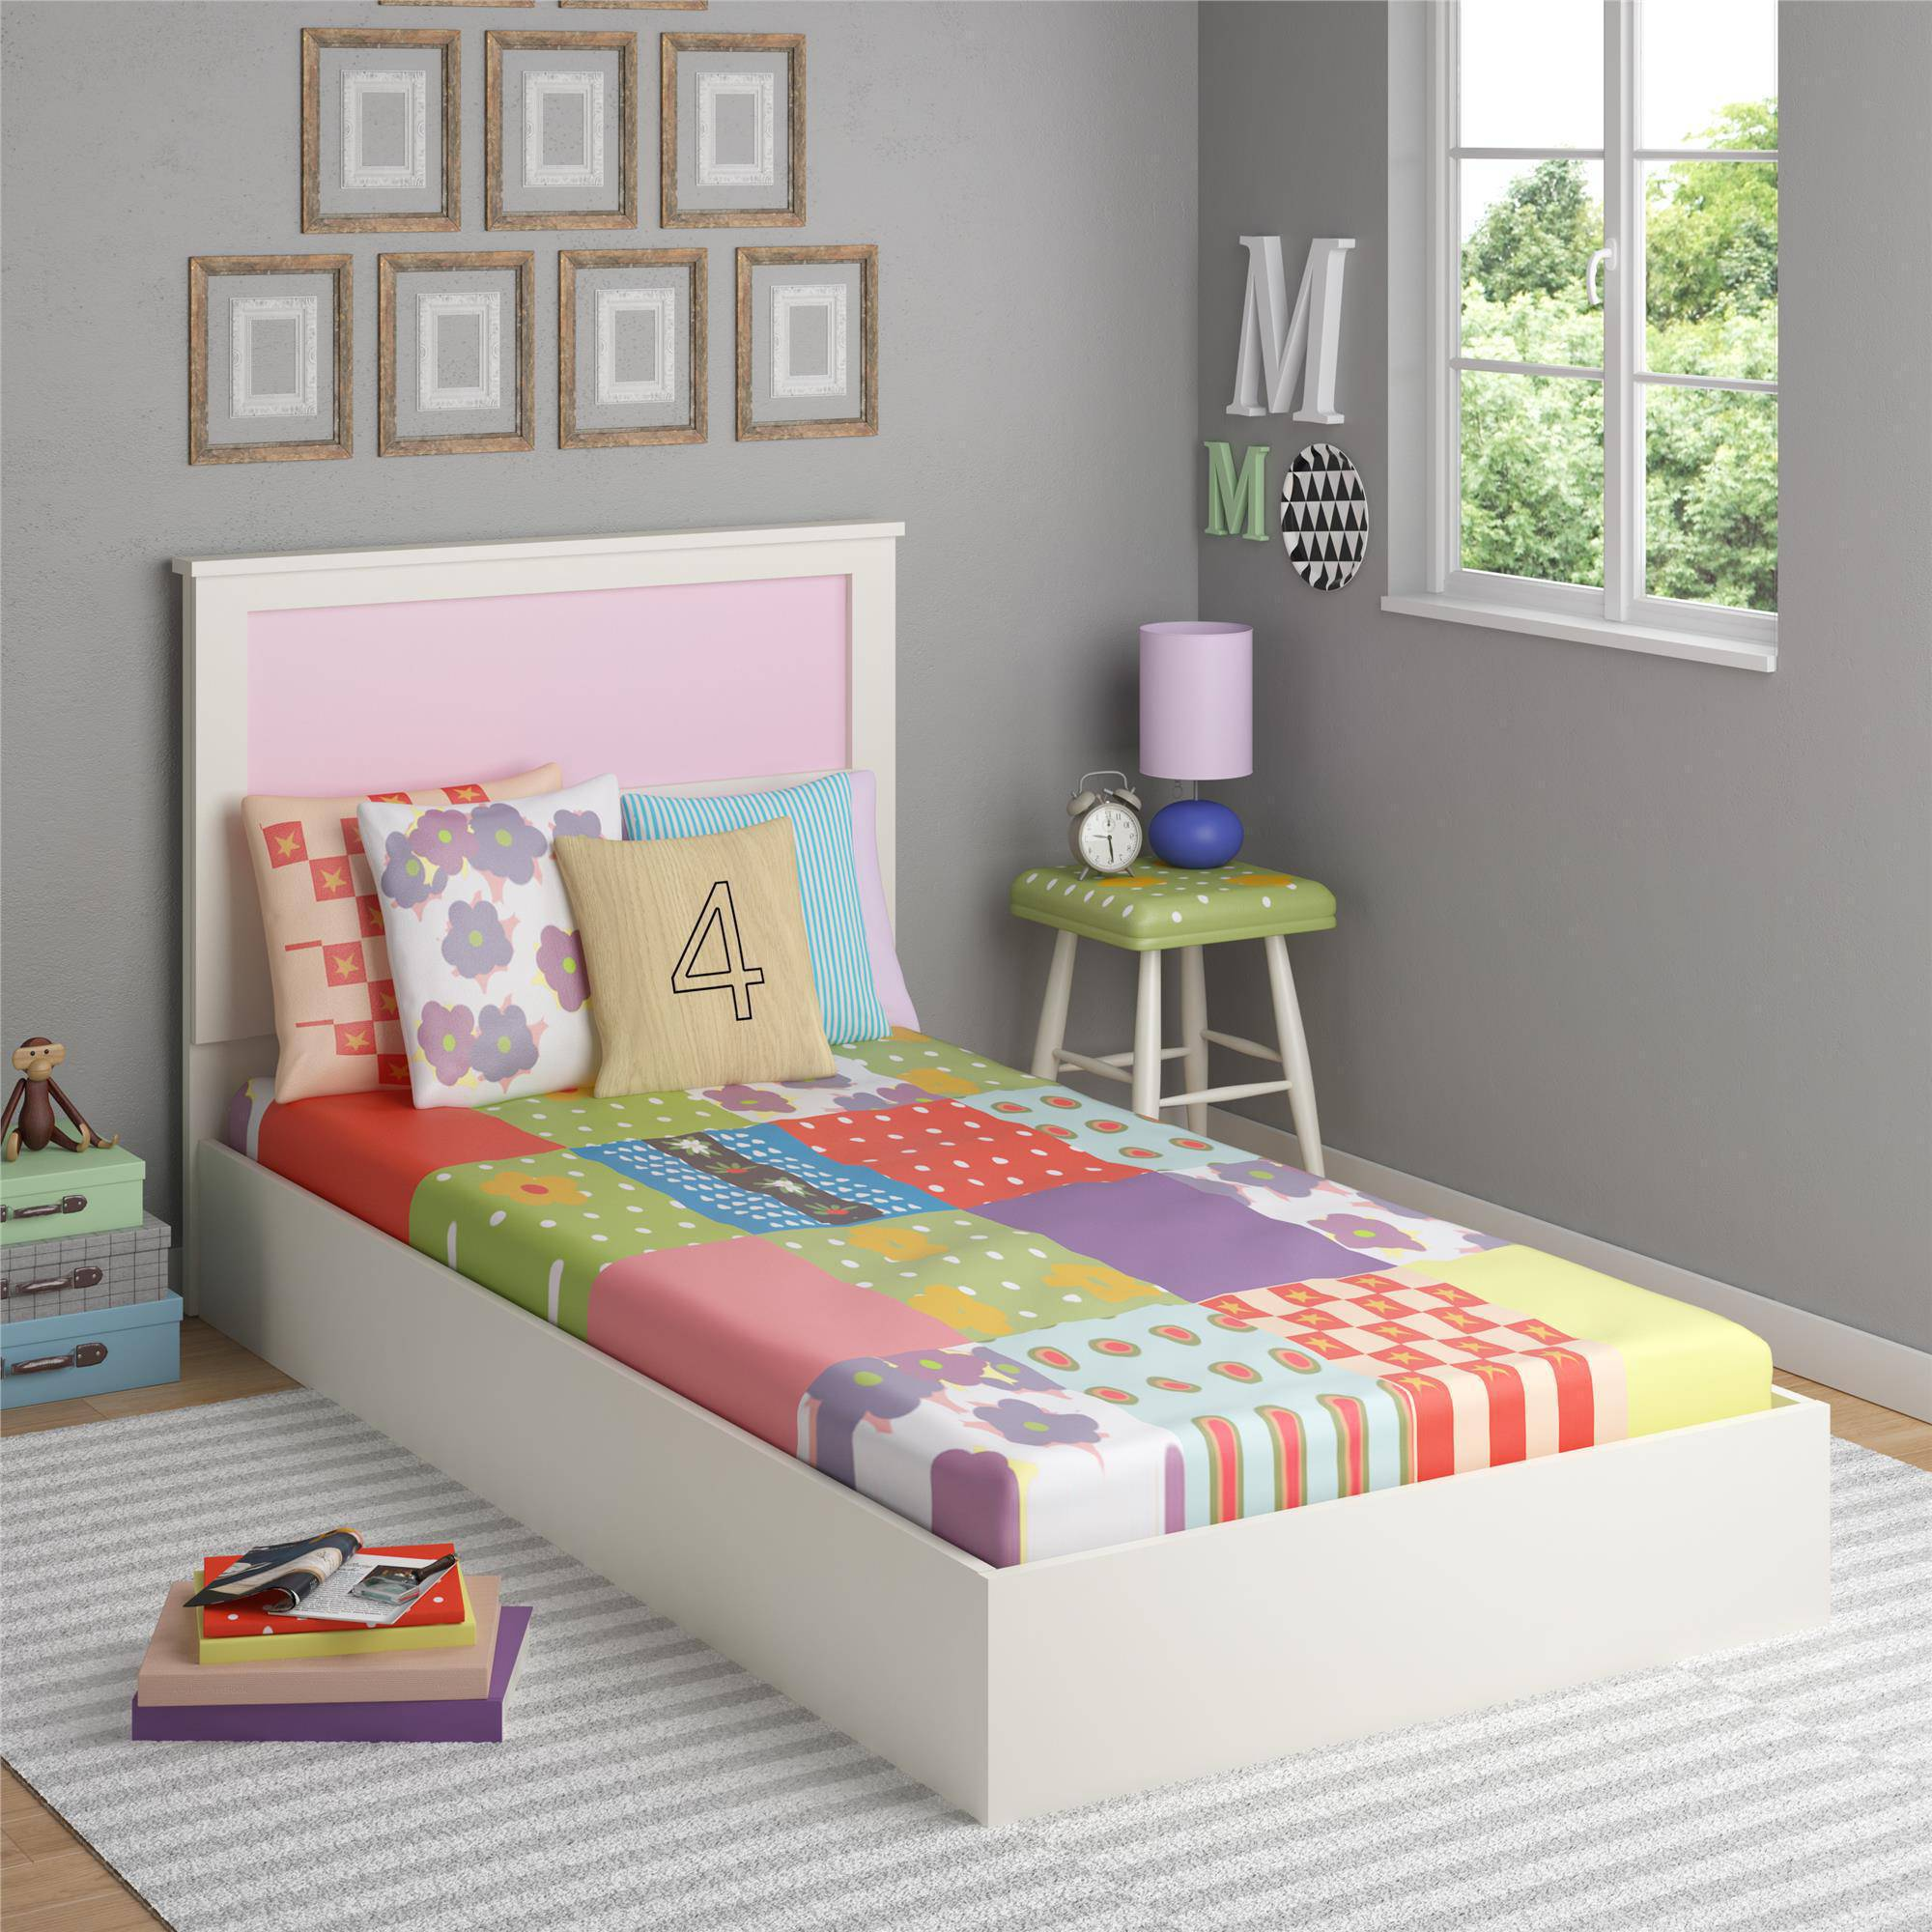 Type of twin beds for kids